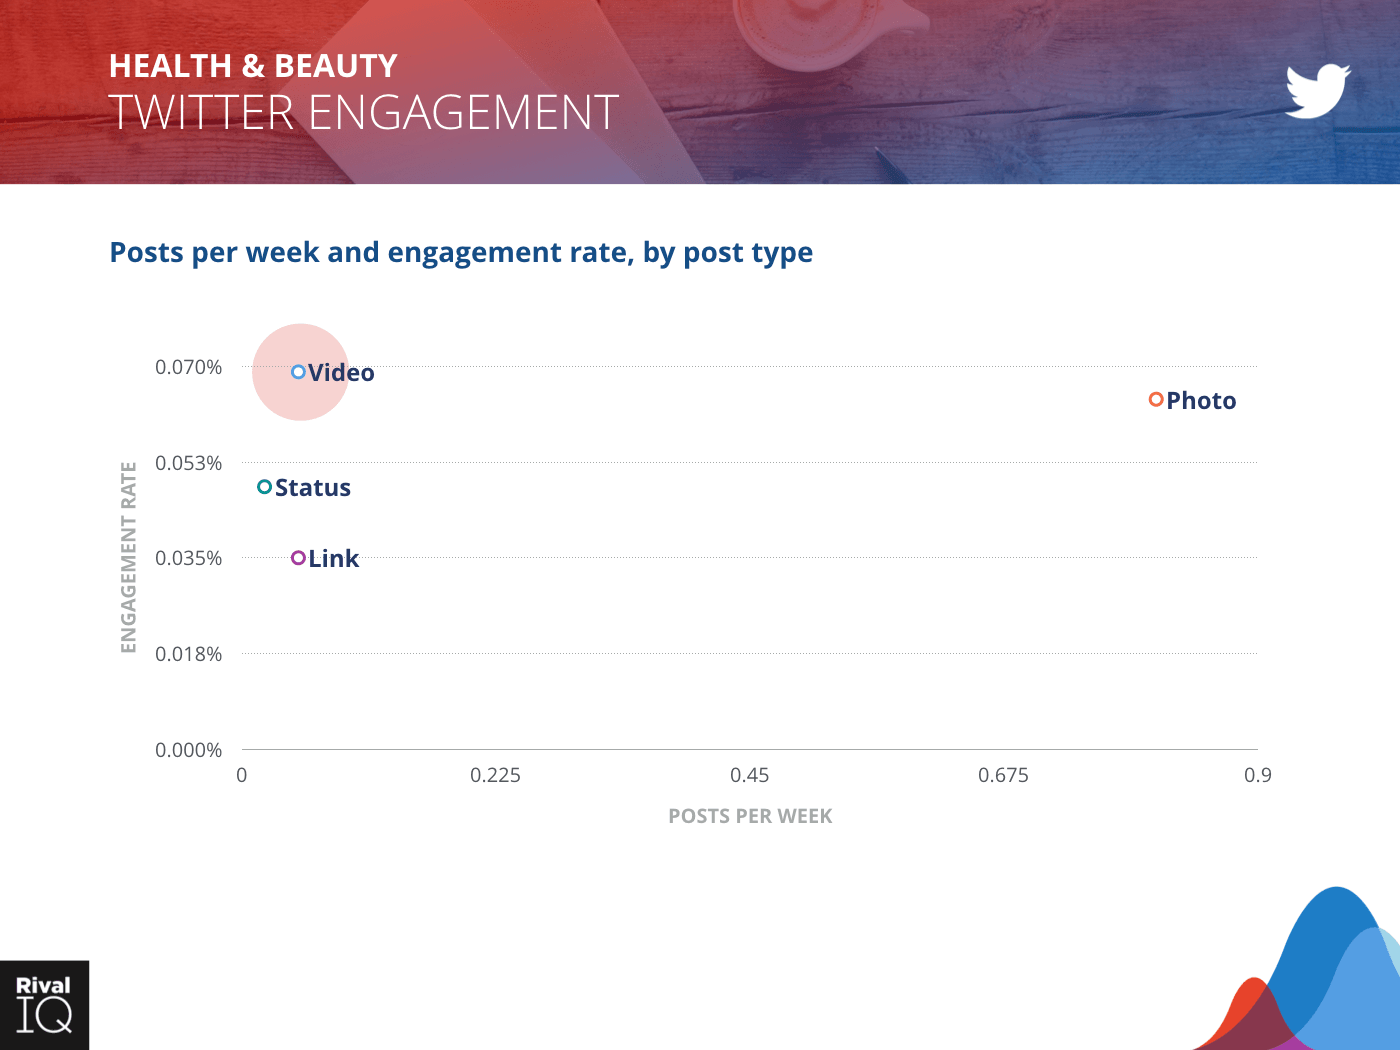 Health & Beauty Industry: scatter graph, posts per week and engagement rate on Twitter by post type